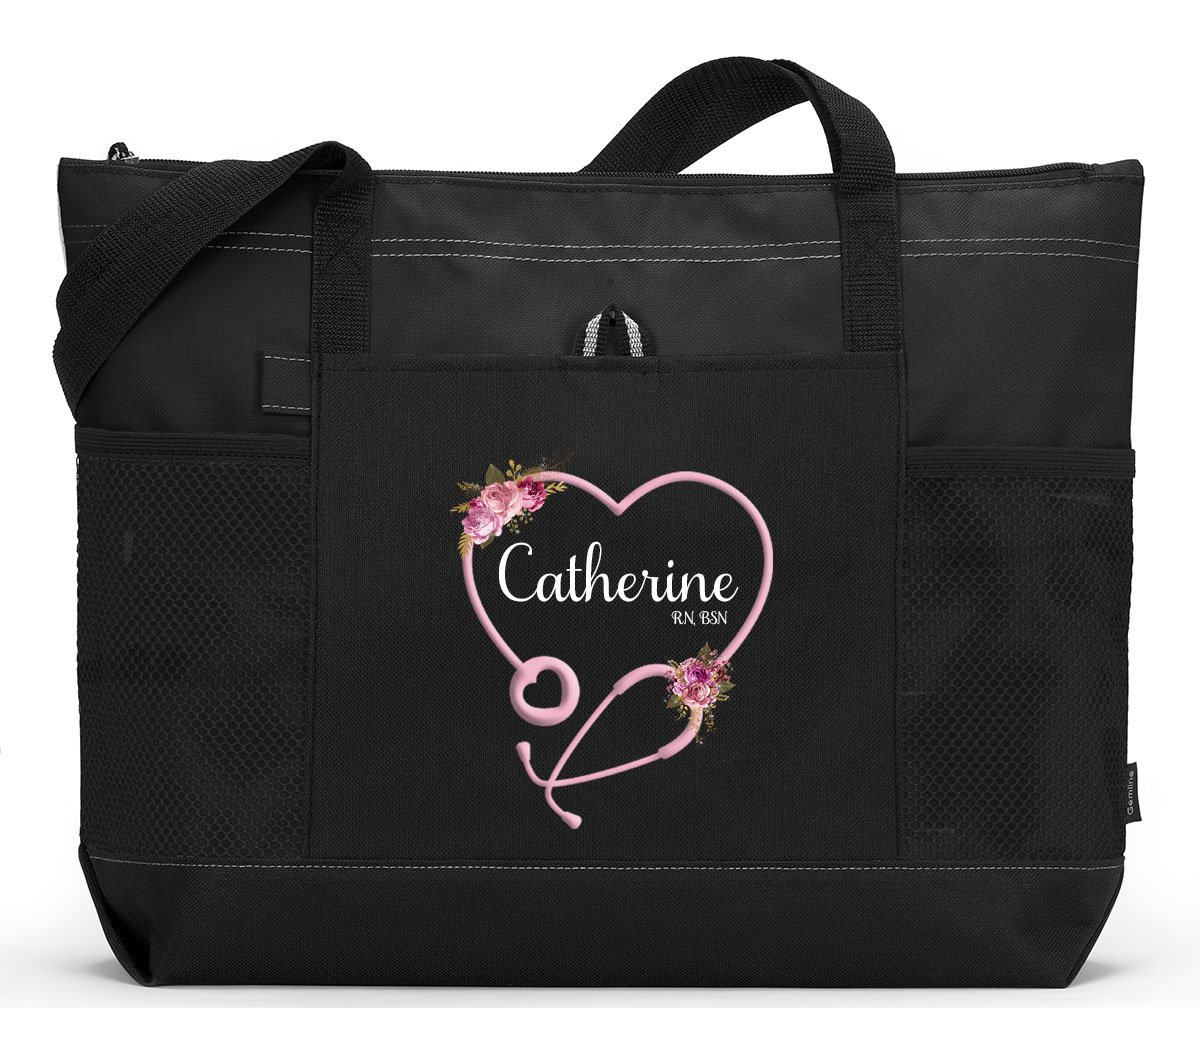 Personalized Nurse with Heart Stethoscope, CNA, RN, LPN Tote Bag with Mesh Pockets